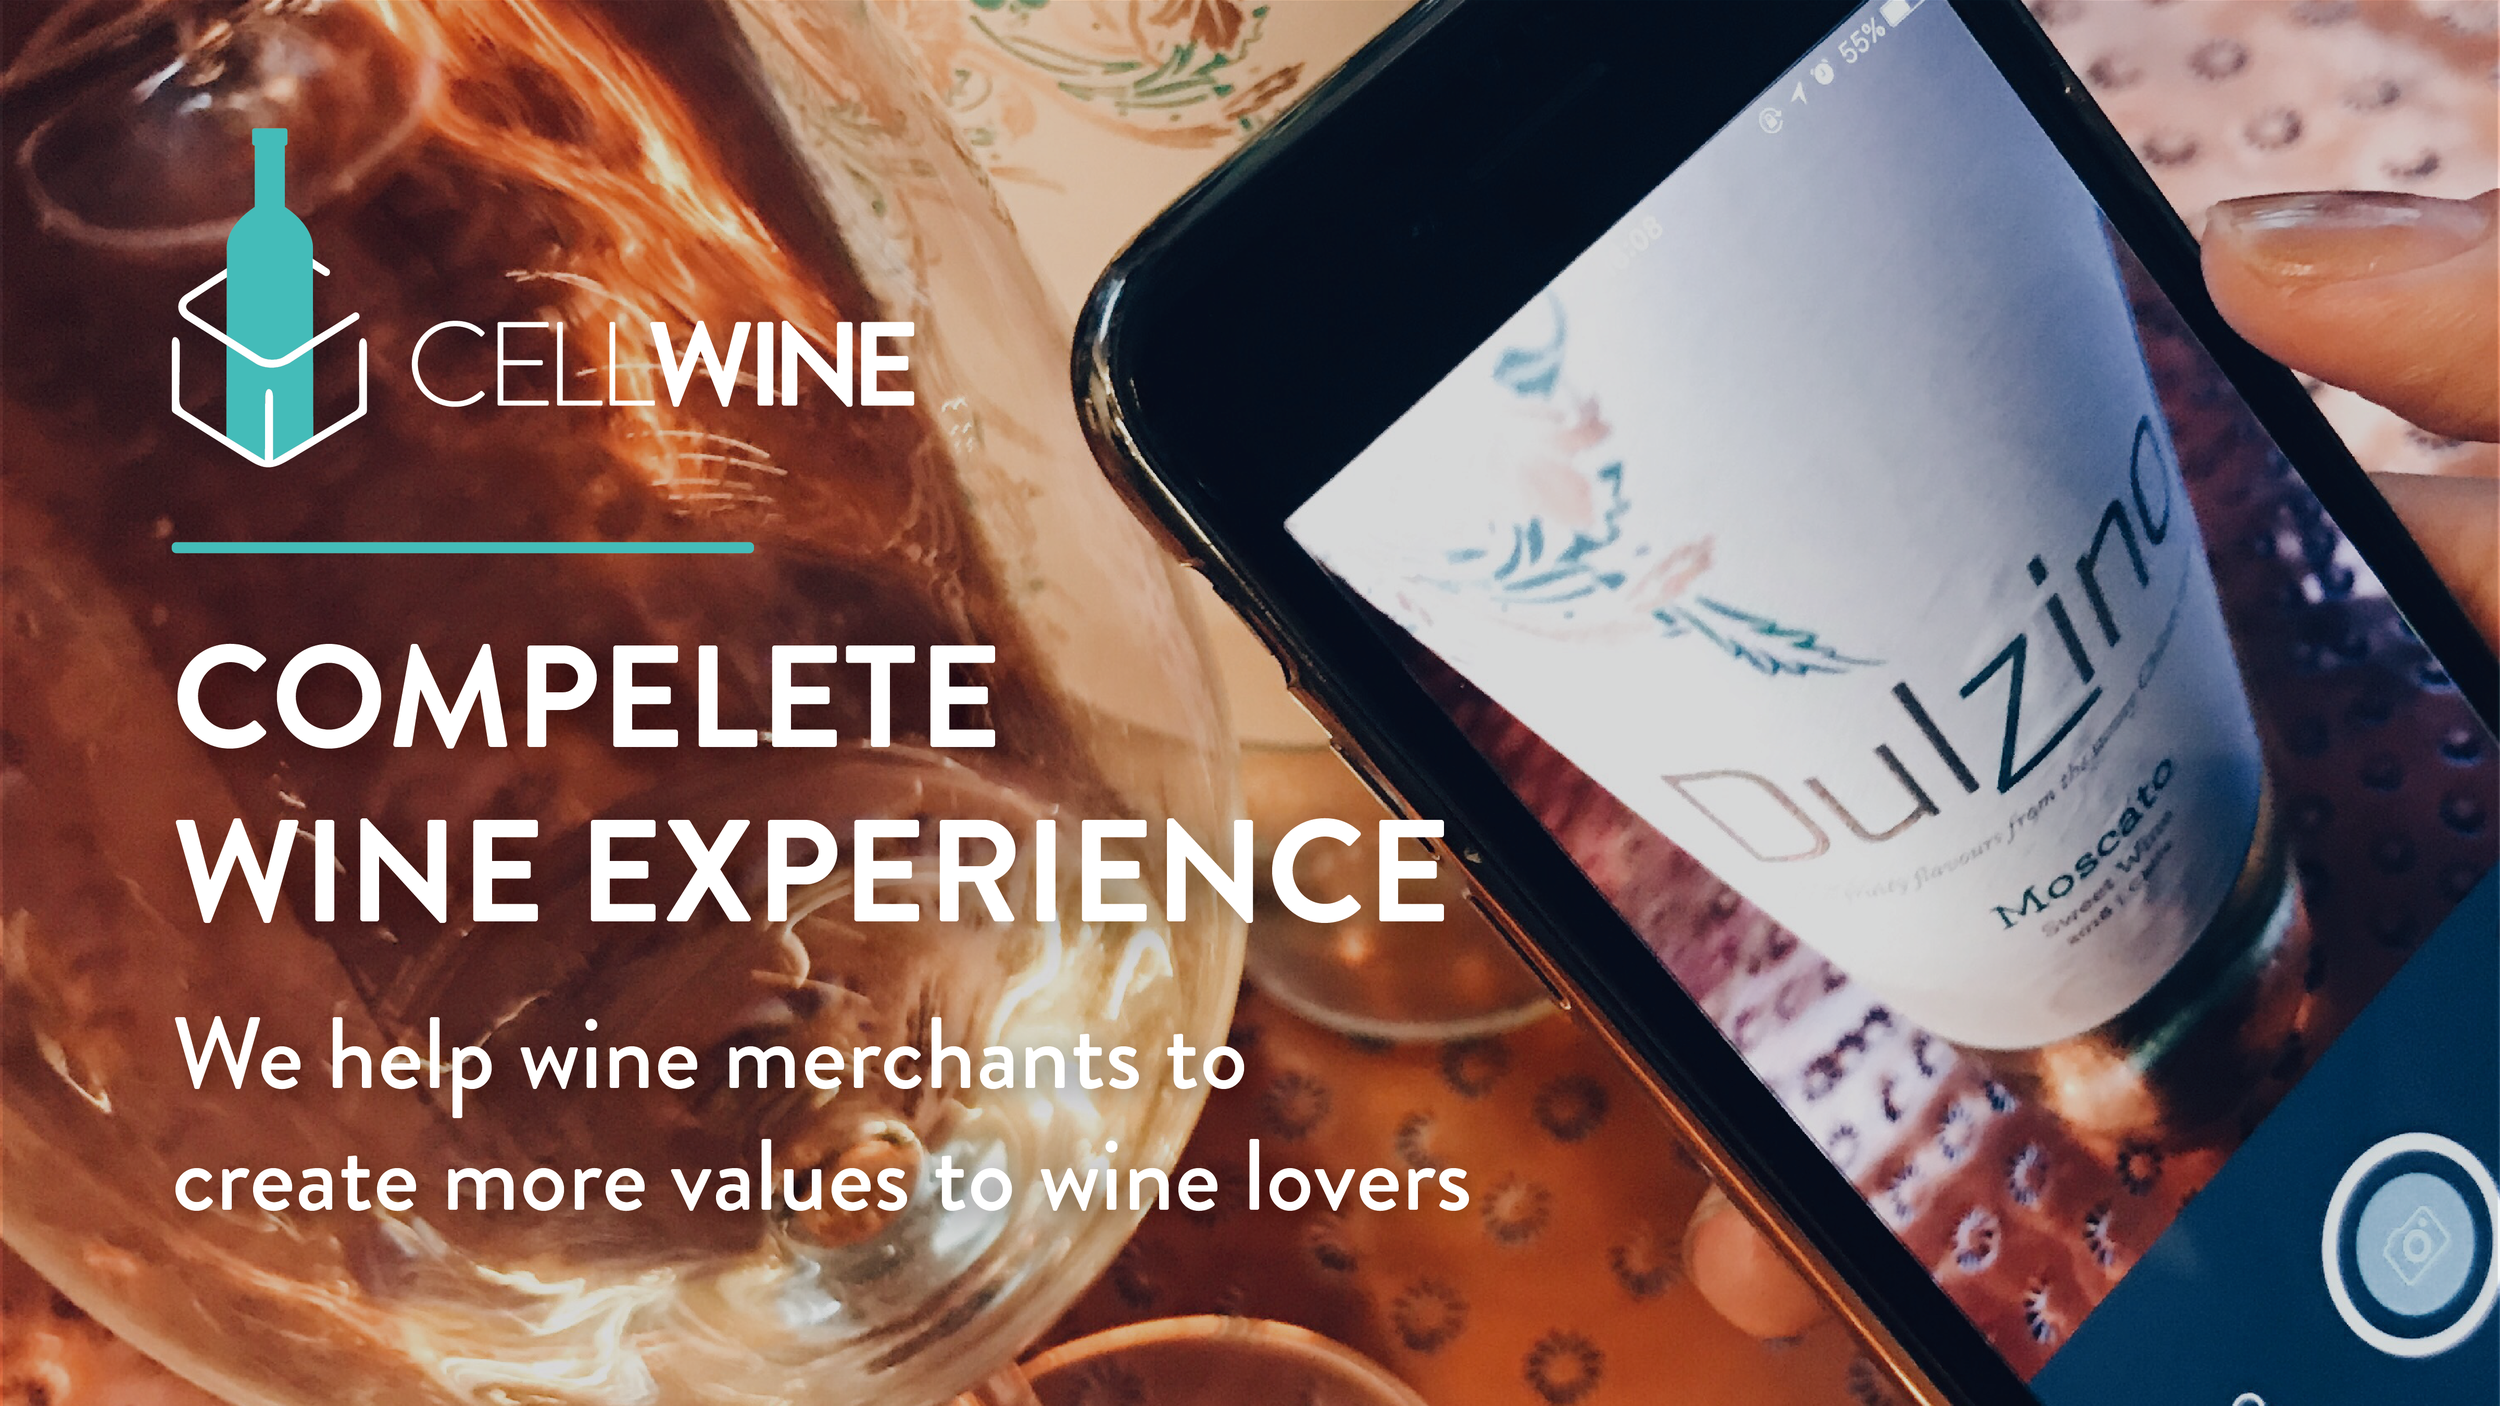 CellWine-startup-product-image.png